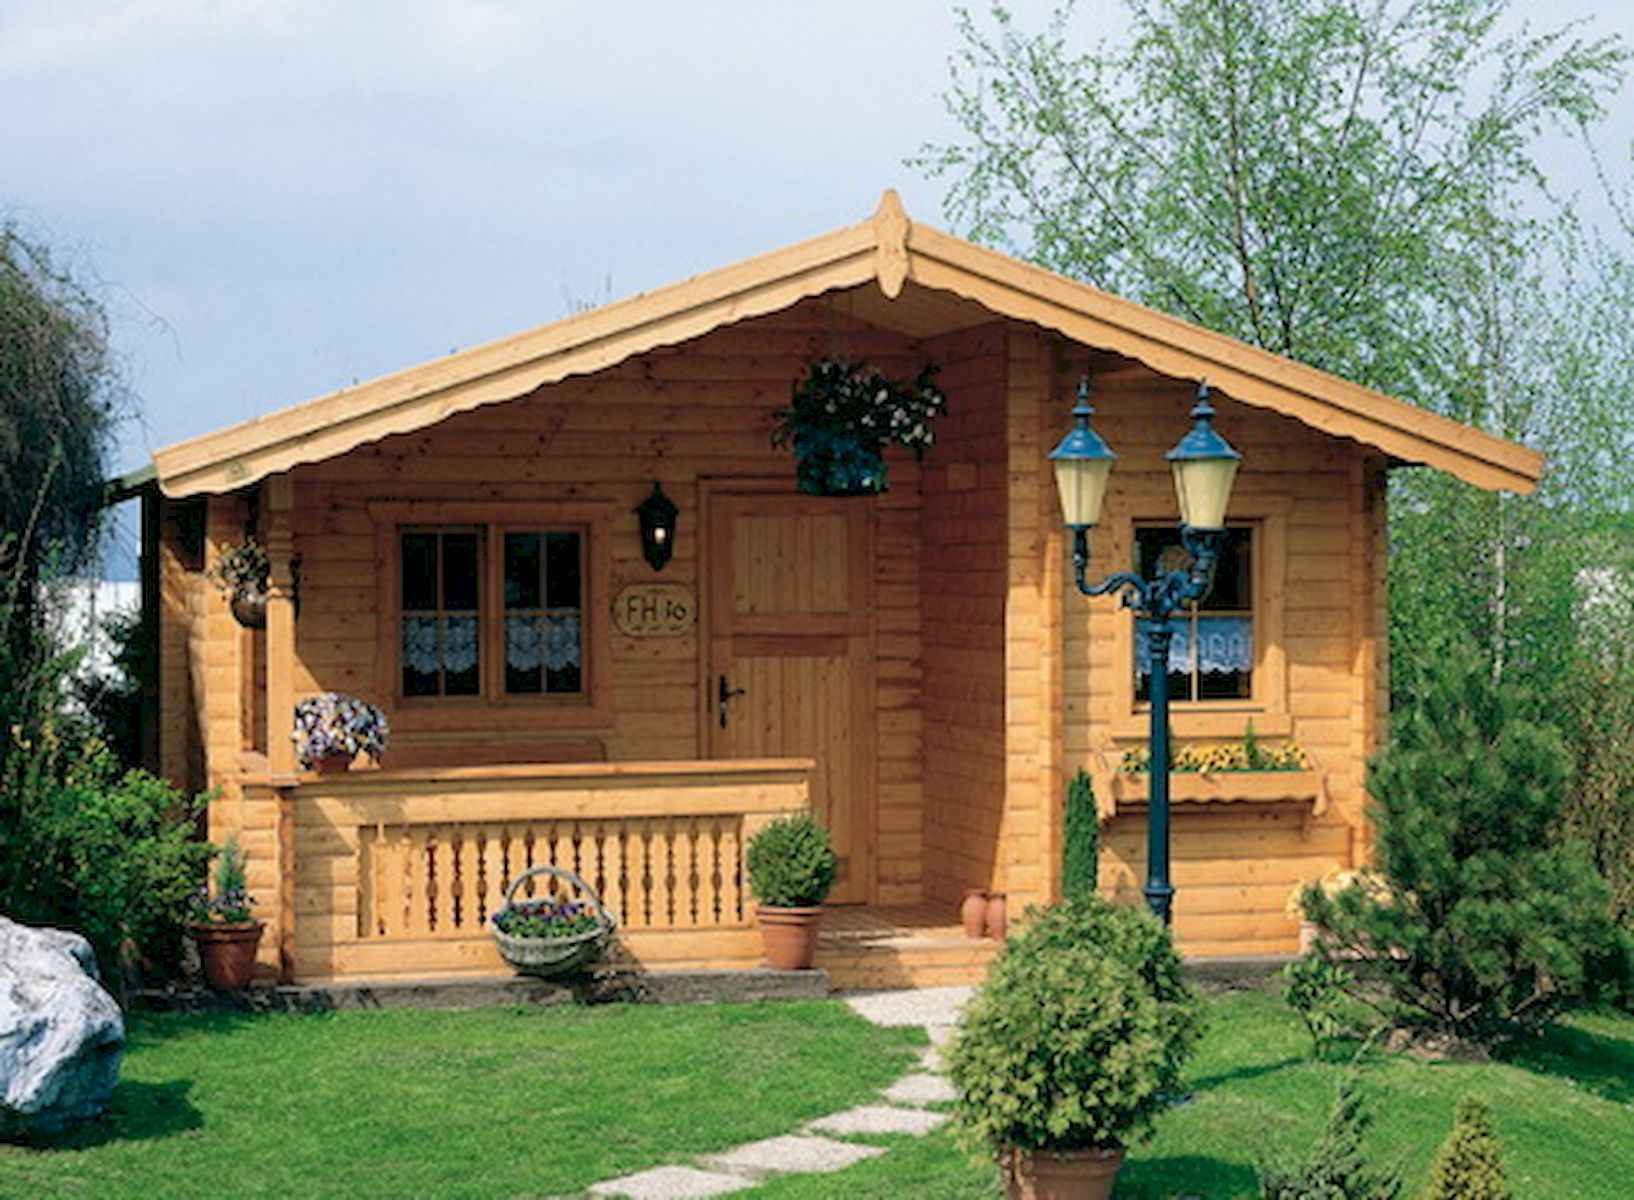 60 Rustic Log Cabin Homes Plans Design Ideas And Remodel (55)